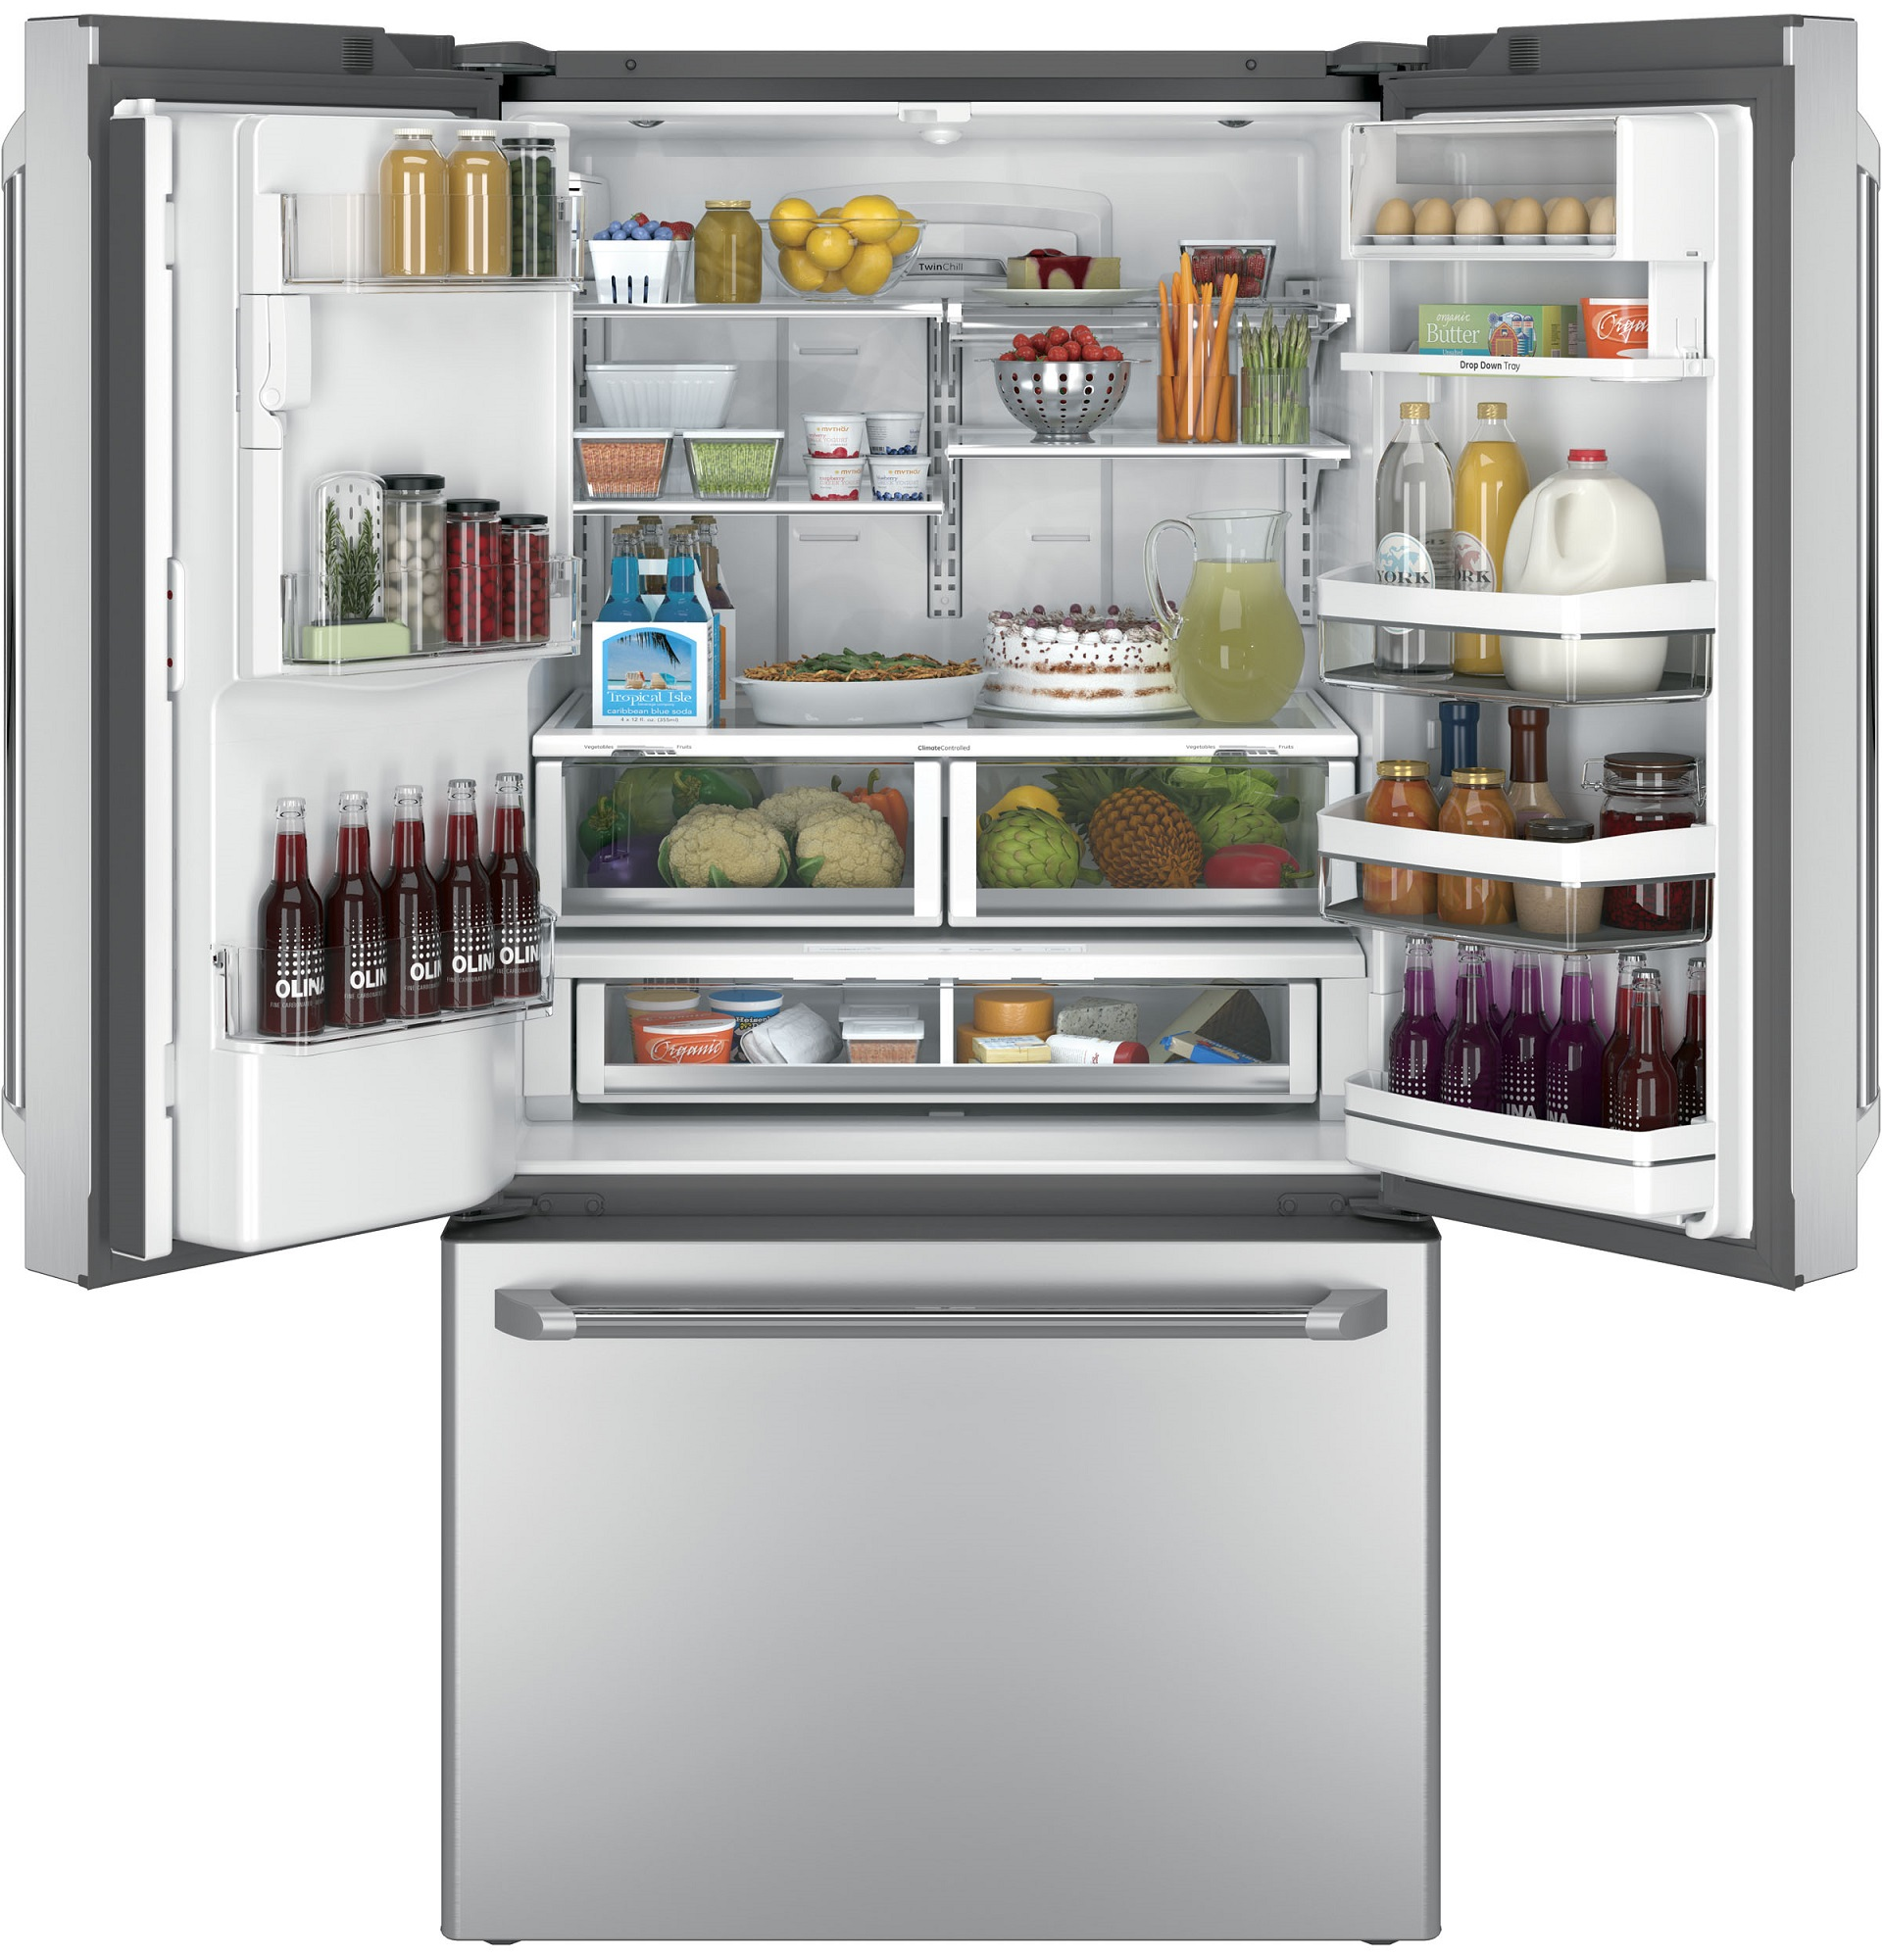 GE Cafe™ Series CFE28USHSS 27.8 cu. ft. French-Door Refrigerator - Stainless Steel